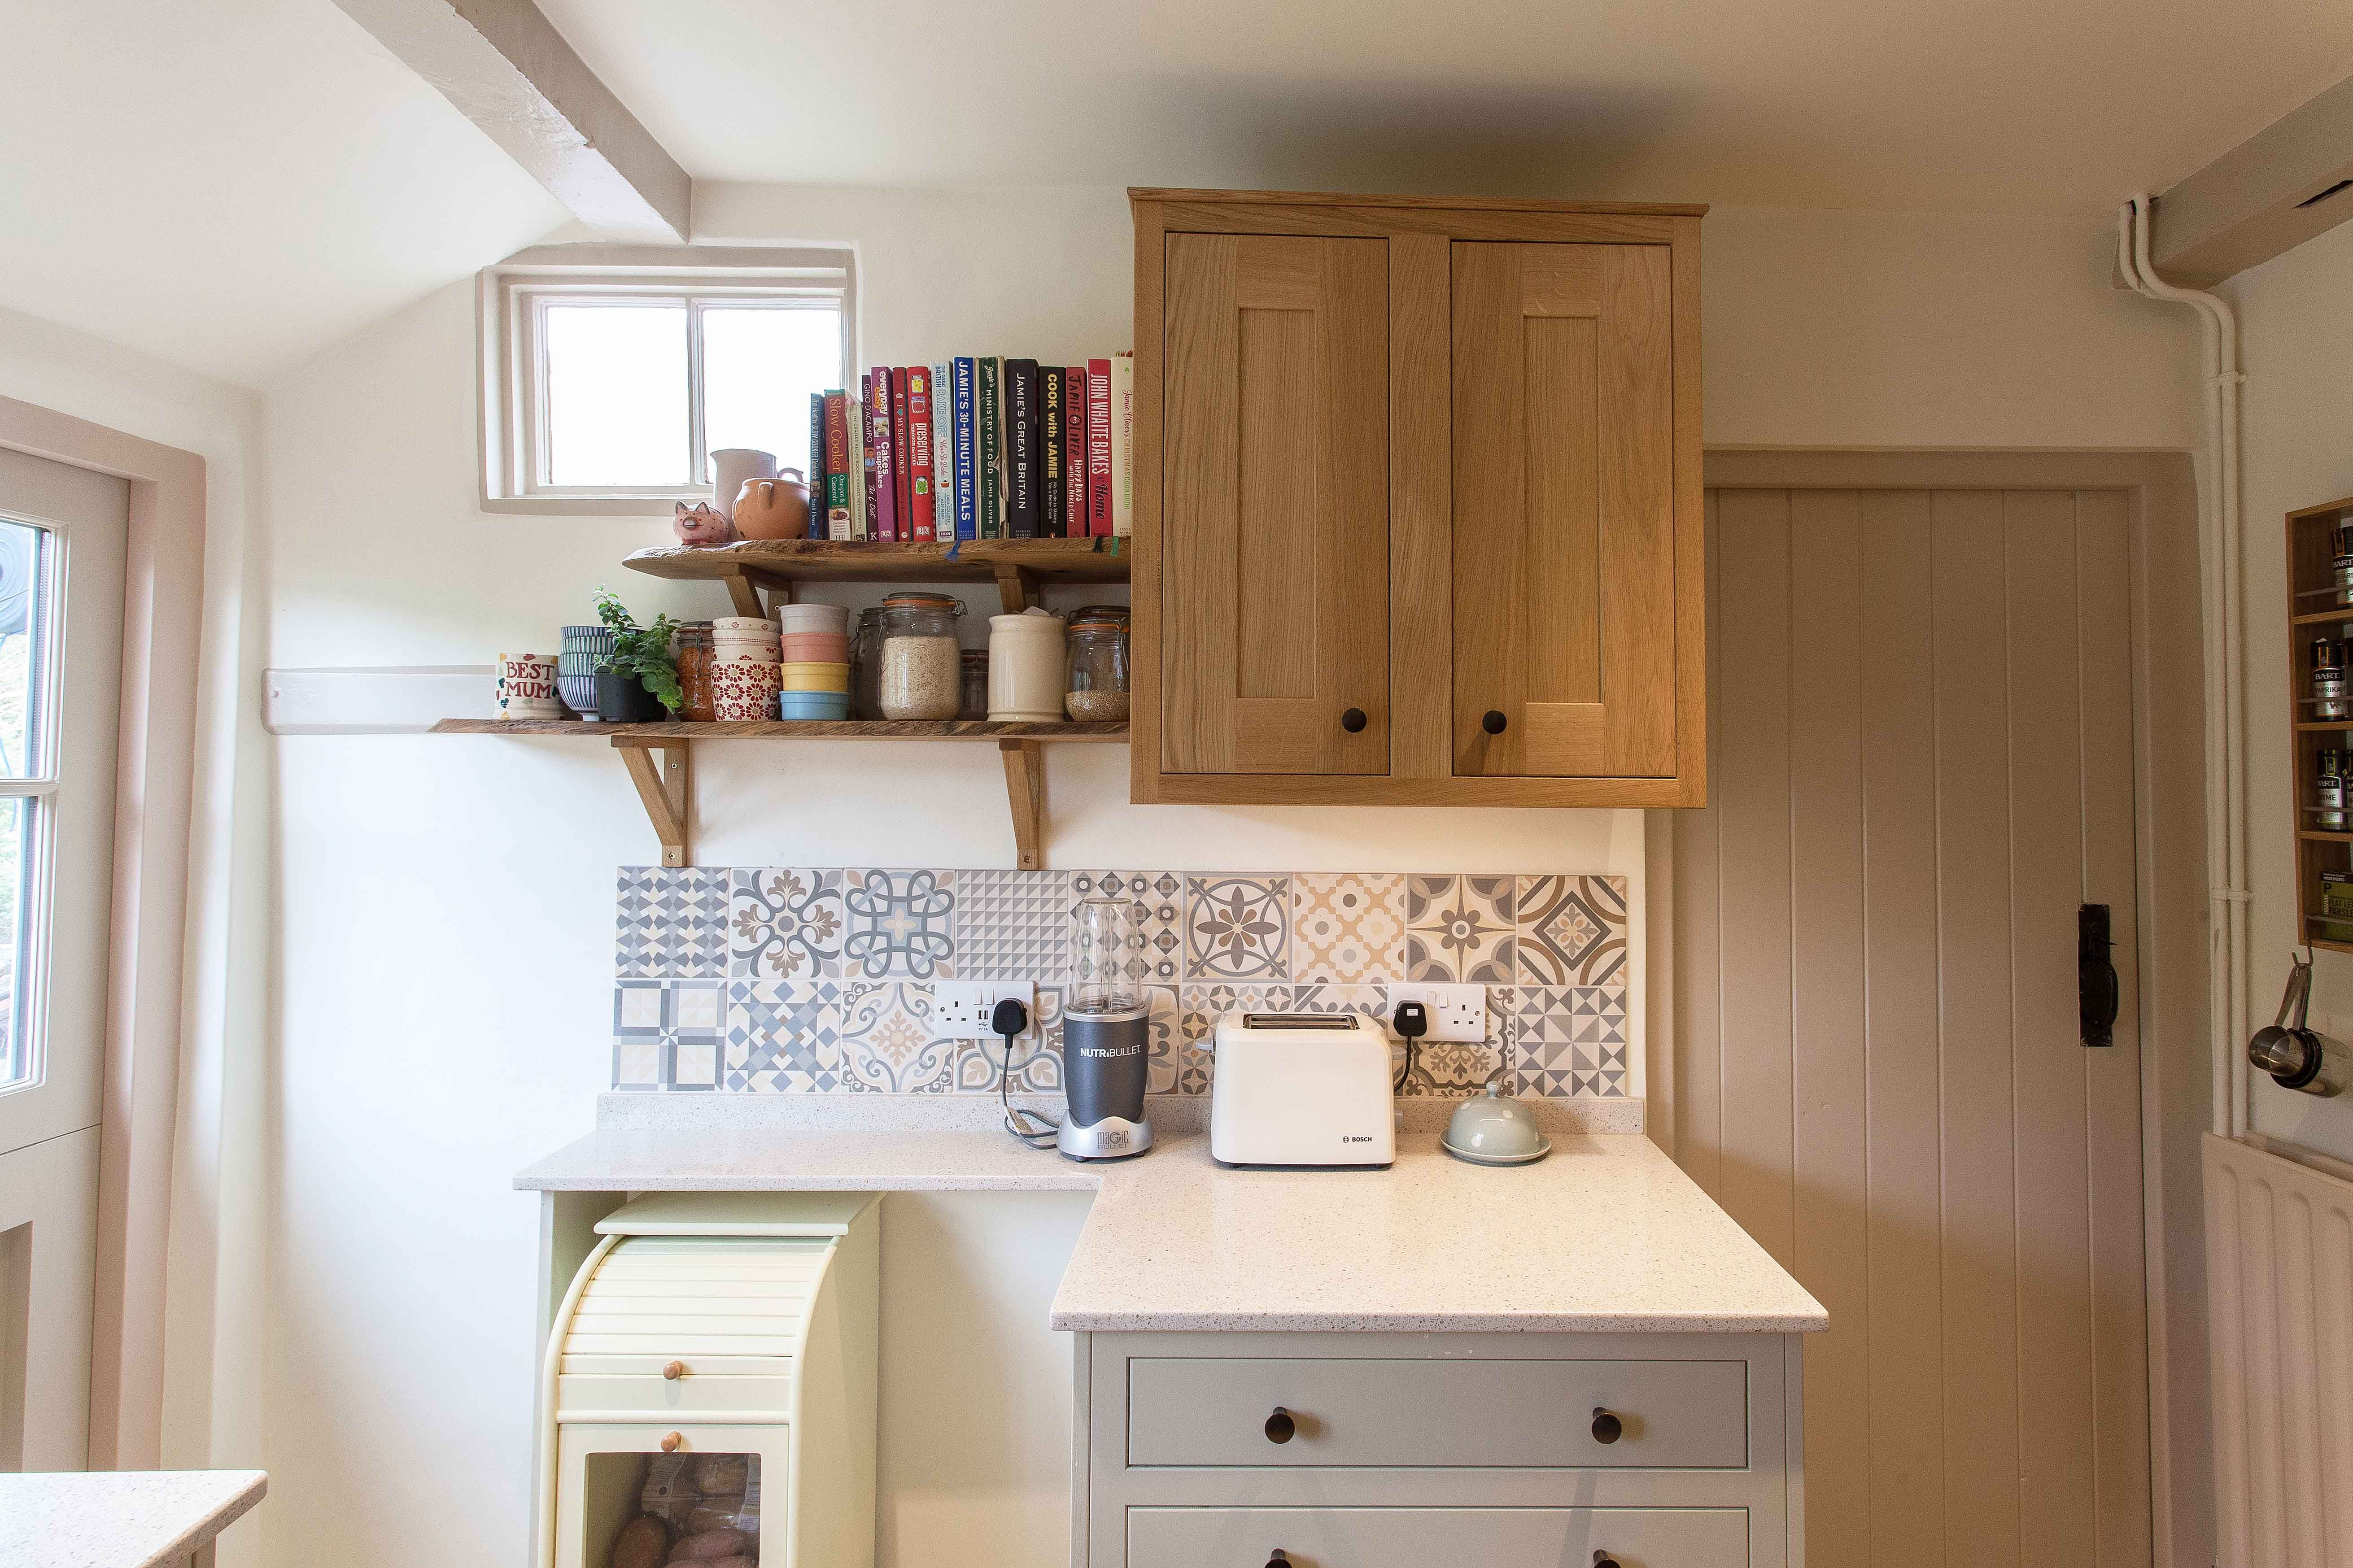 Quirky Kitchen Design In Surrey With Handmade Cabinets Godalming